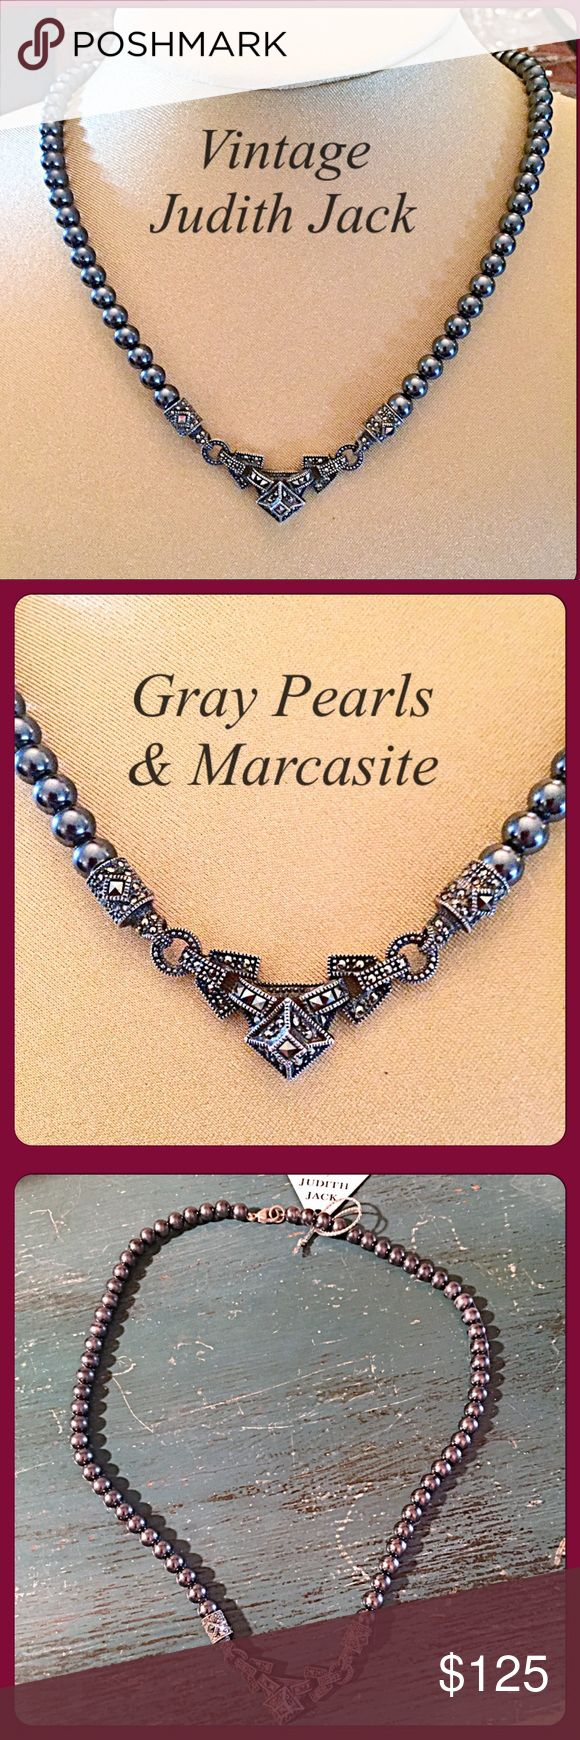 "❤️VTG Judith Jack Pearl & Marcasite Necklace❤️ This is a stunning necklace in person. It's hard to capture the beauty of the Art Deco style marcasite set in .925 sterling silver. The gray pearls are beautiful too and the nacre still looks nice & polished on all of them. I think they're 6mm in size. The length of the necklace is 18"" w/a lobster claw clasp. Hallmark ""Sterling"" & JJ stamp in triangle as shown. Purchased over 20 years ago and in excellent condition. Worn 2-3x over the years but…"